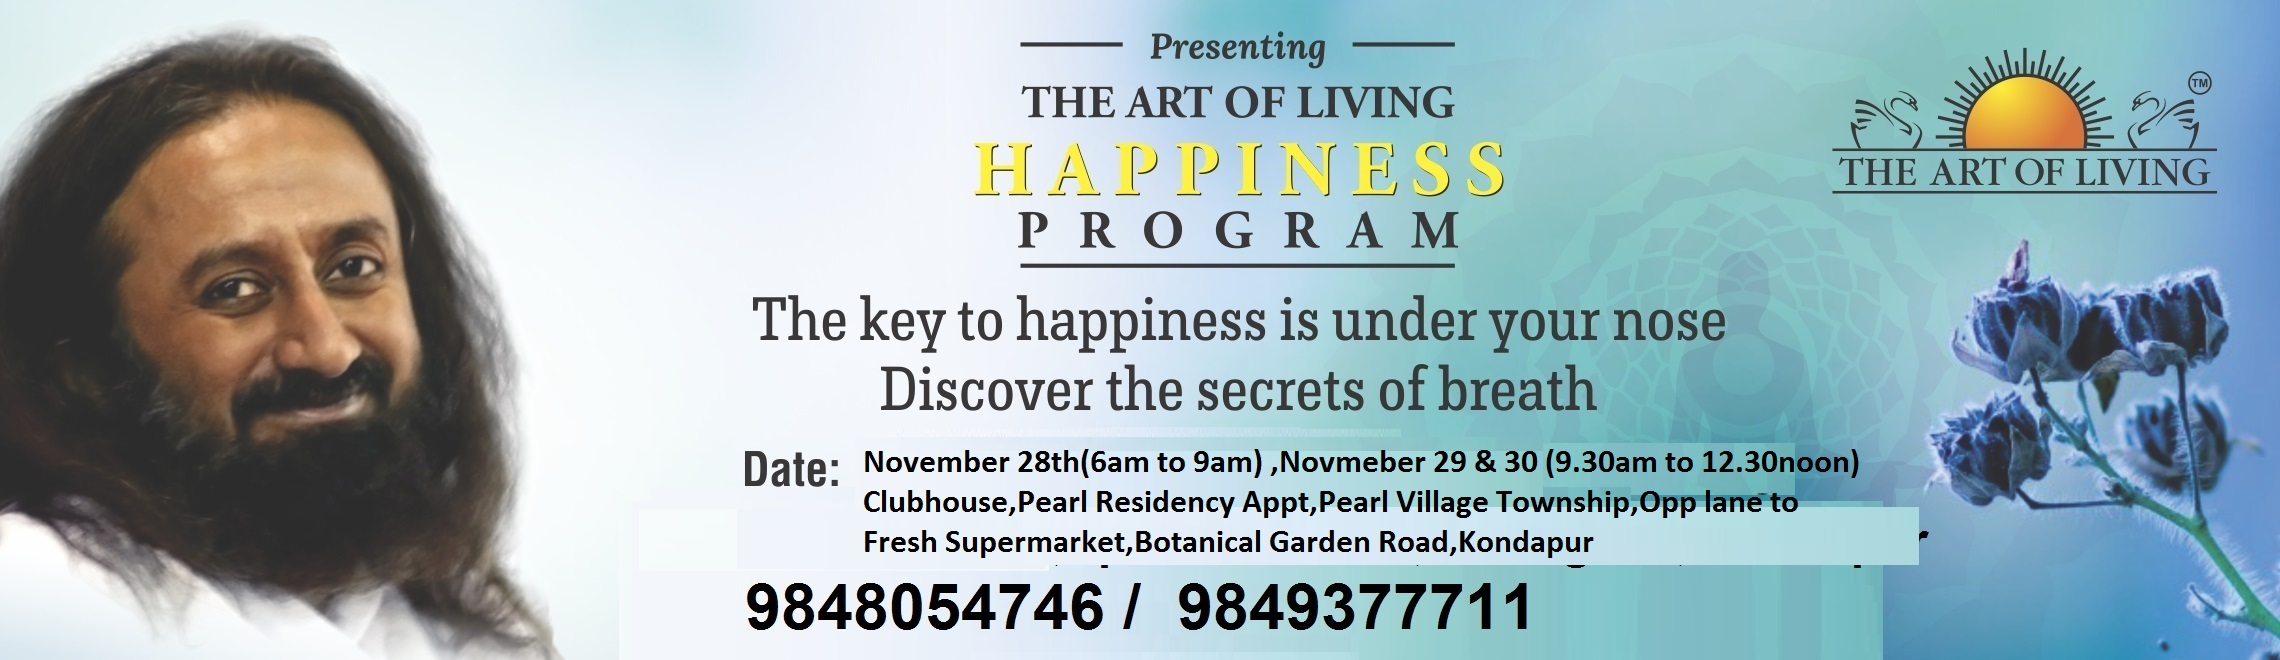 Book Online Tickets for Art Of Living Happiness Program  , Hyderabad. The key to happiness is under your noseDiscover the secrets of breathAsk any Art of Living teacher how one acquires an unshakeable smile and you will get the simplest yet most profound knowledge: by using the breath. Is it really as easy as that? Let